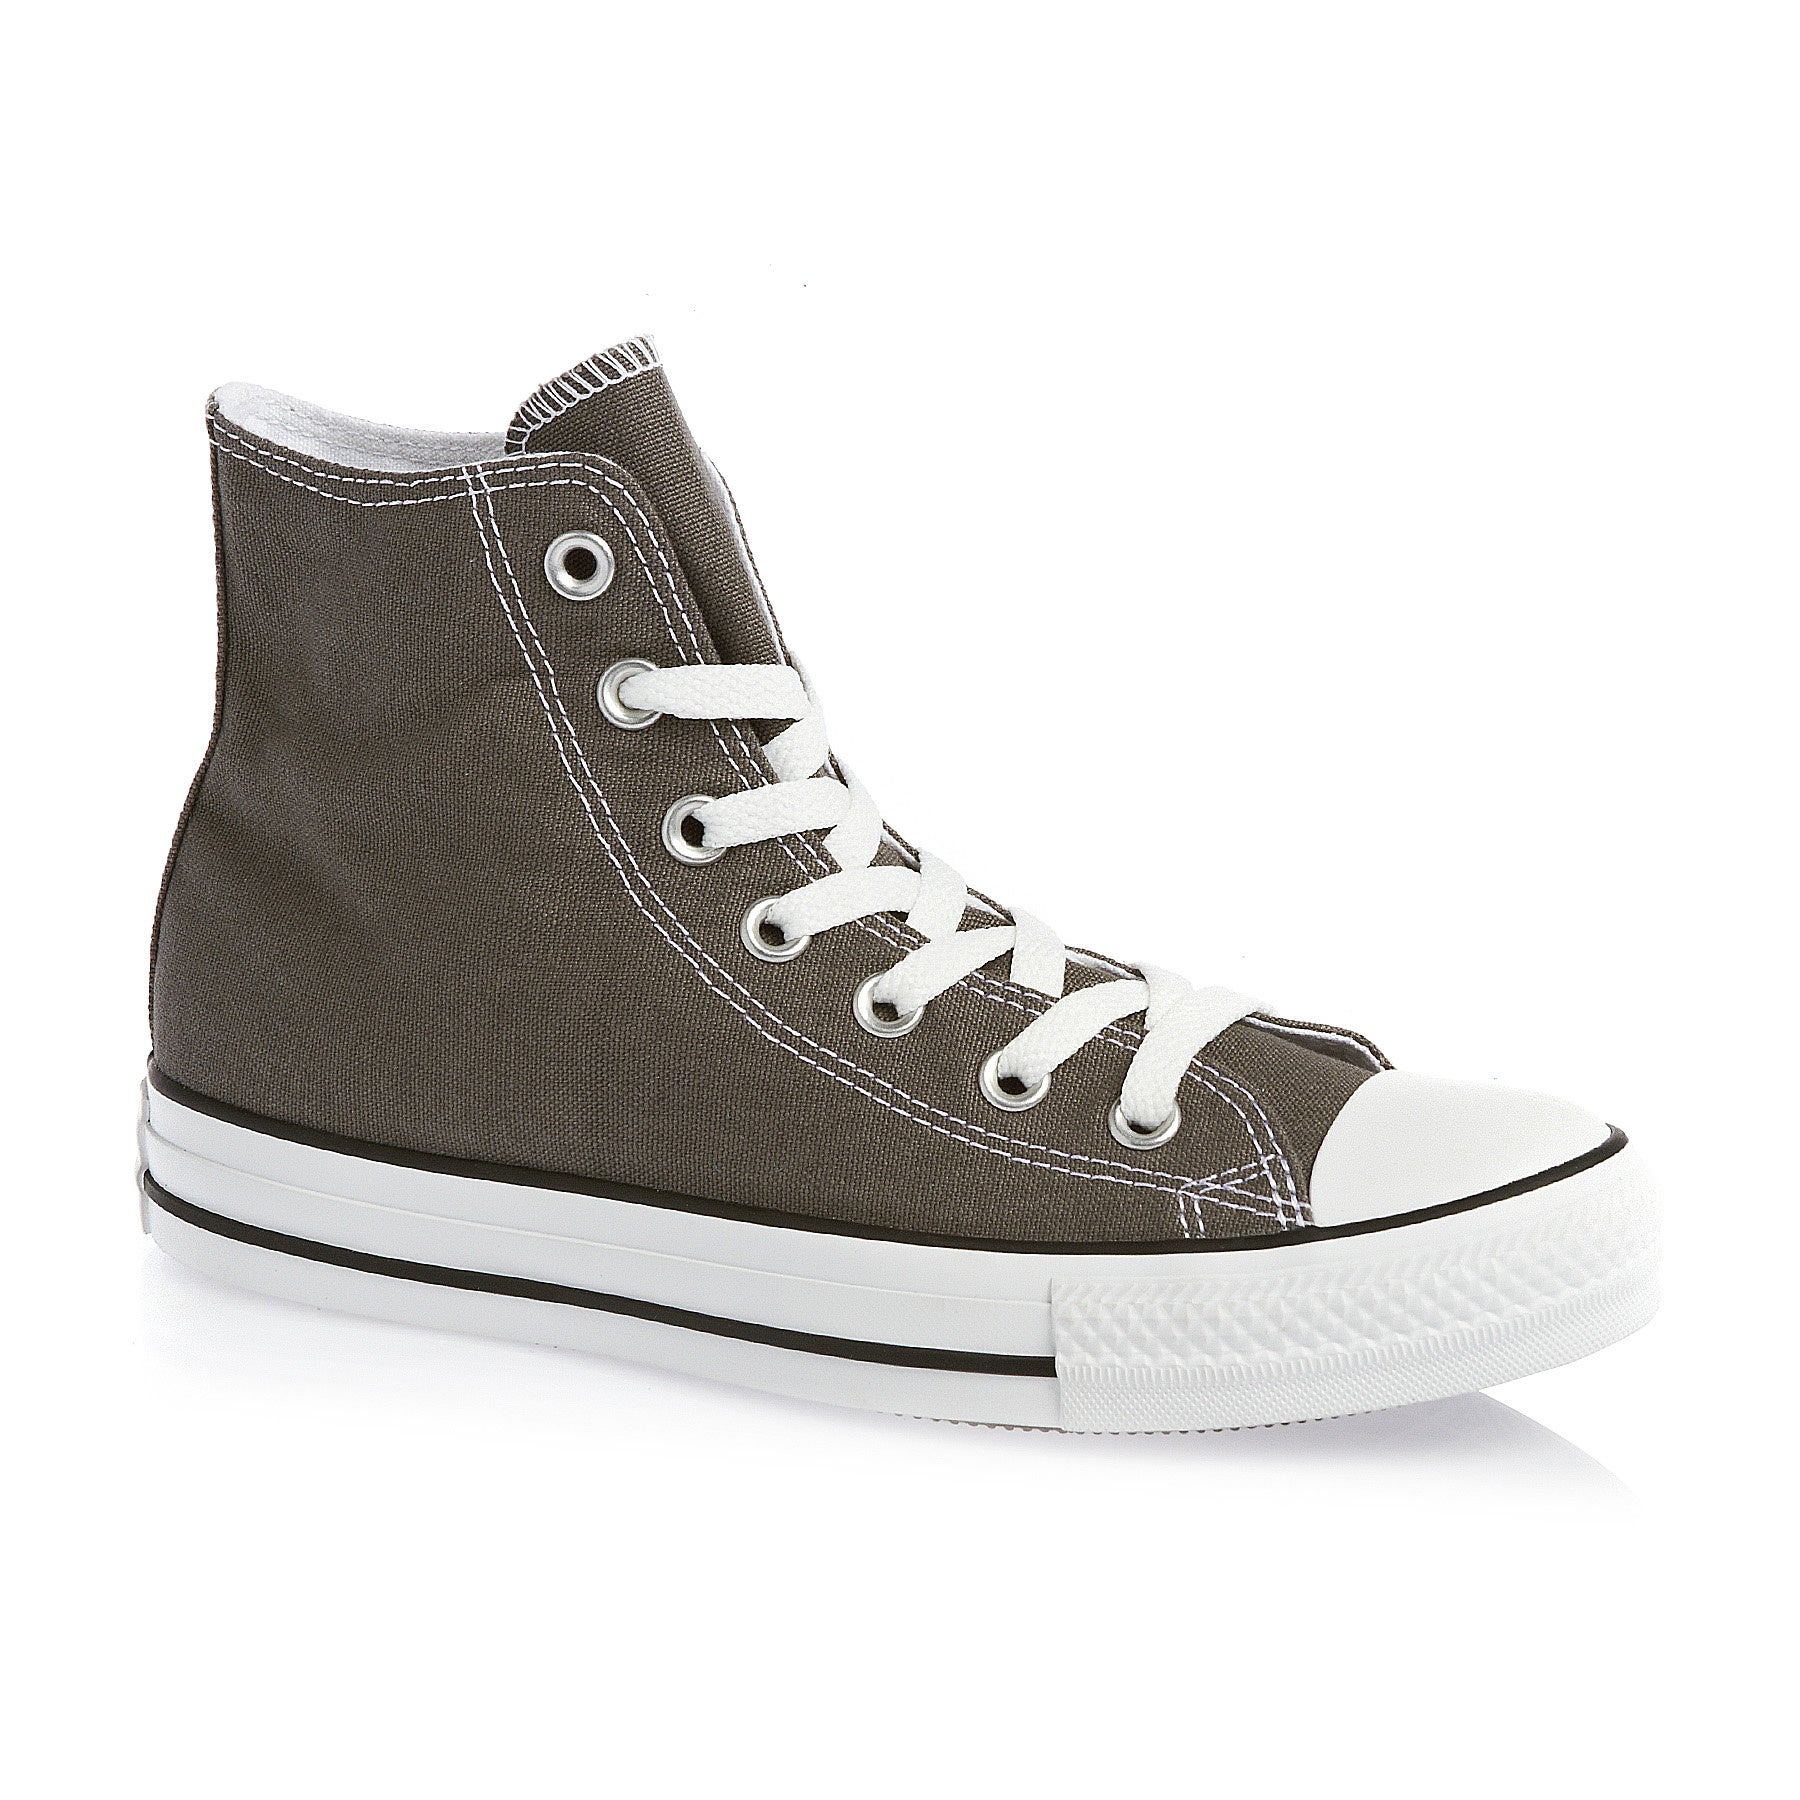 Converse Chuck Taylor All Stars Hi Shoes - Charcoal